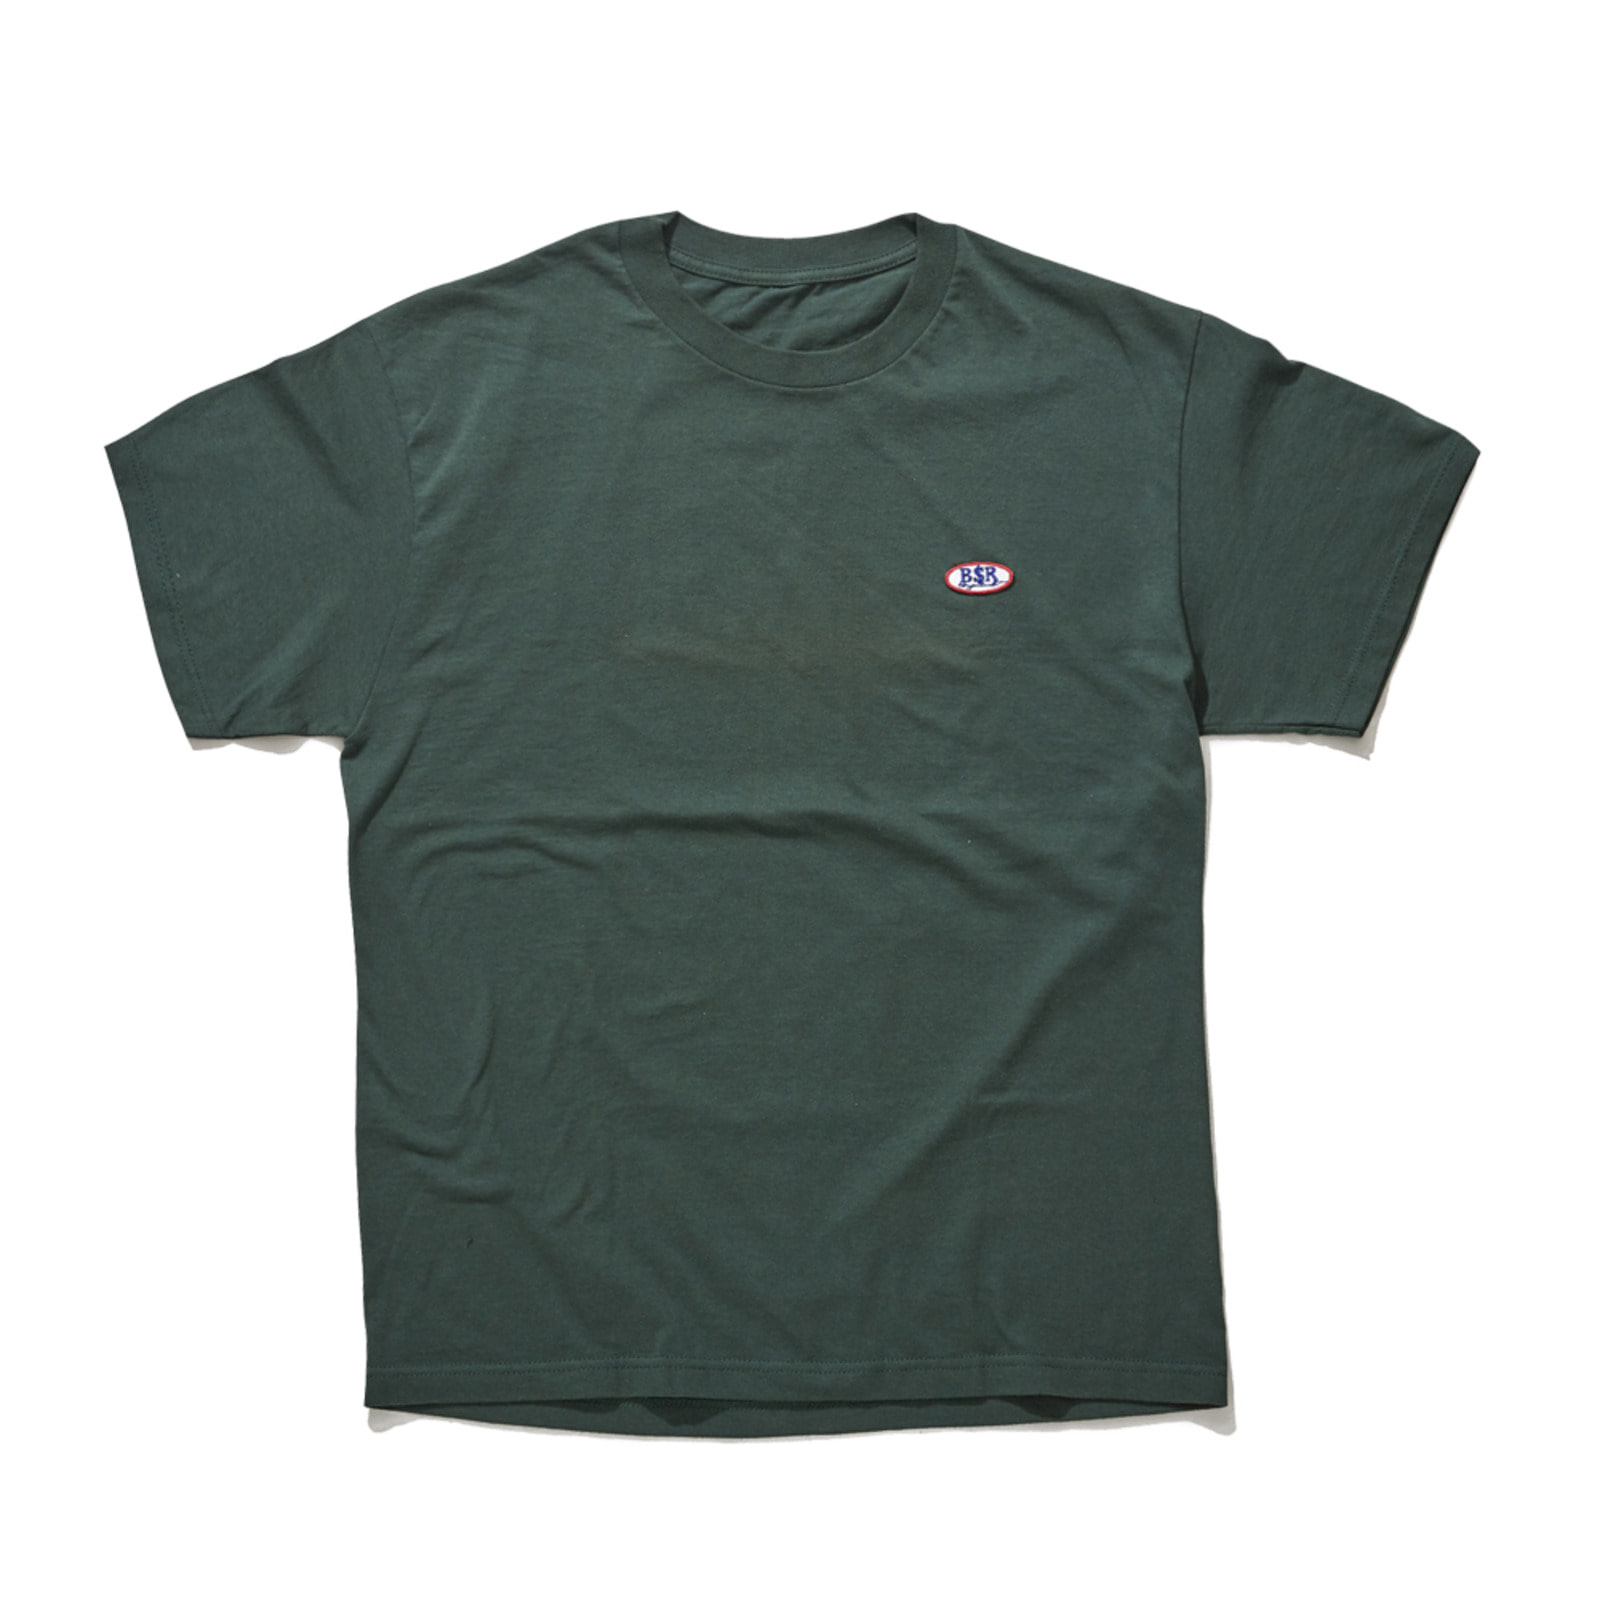 BSR WAPPEN T-SHIRT GREEN